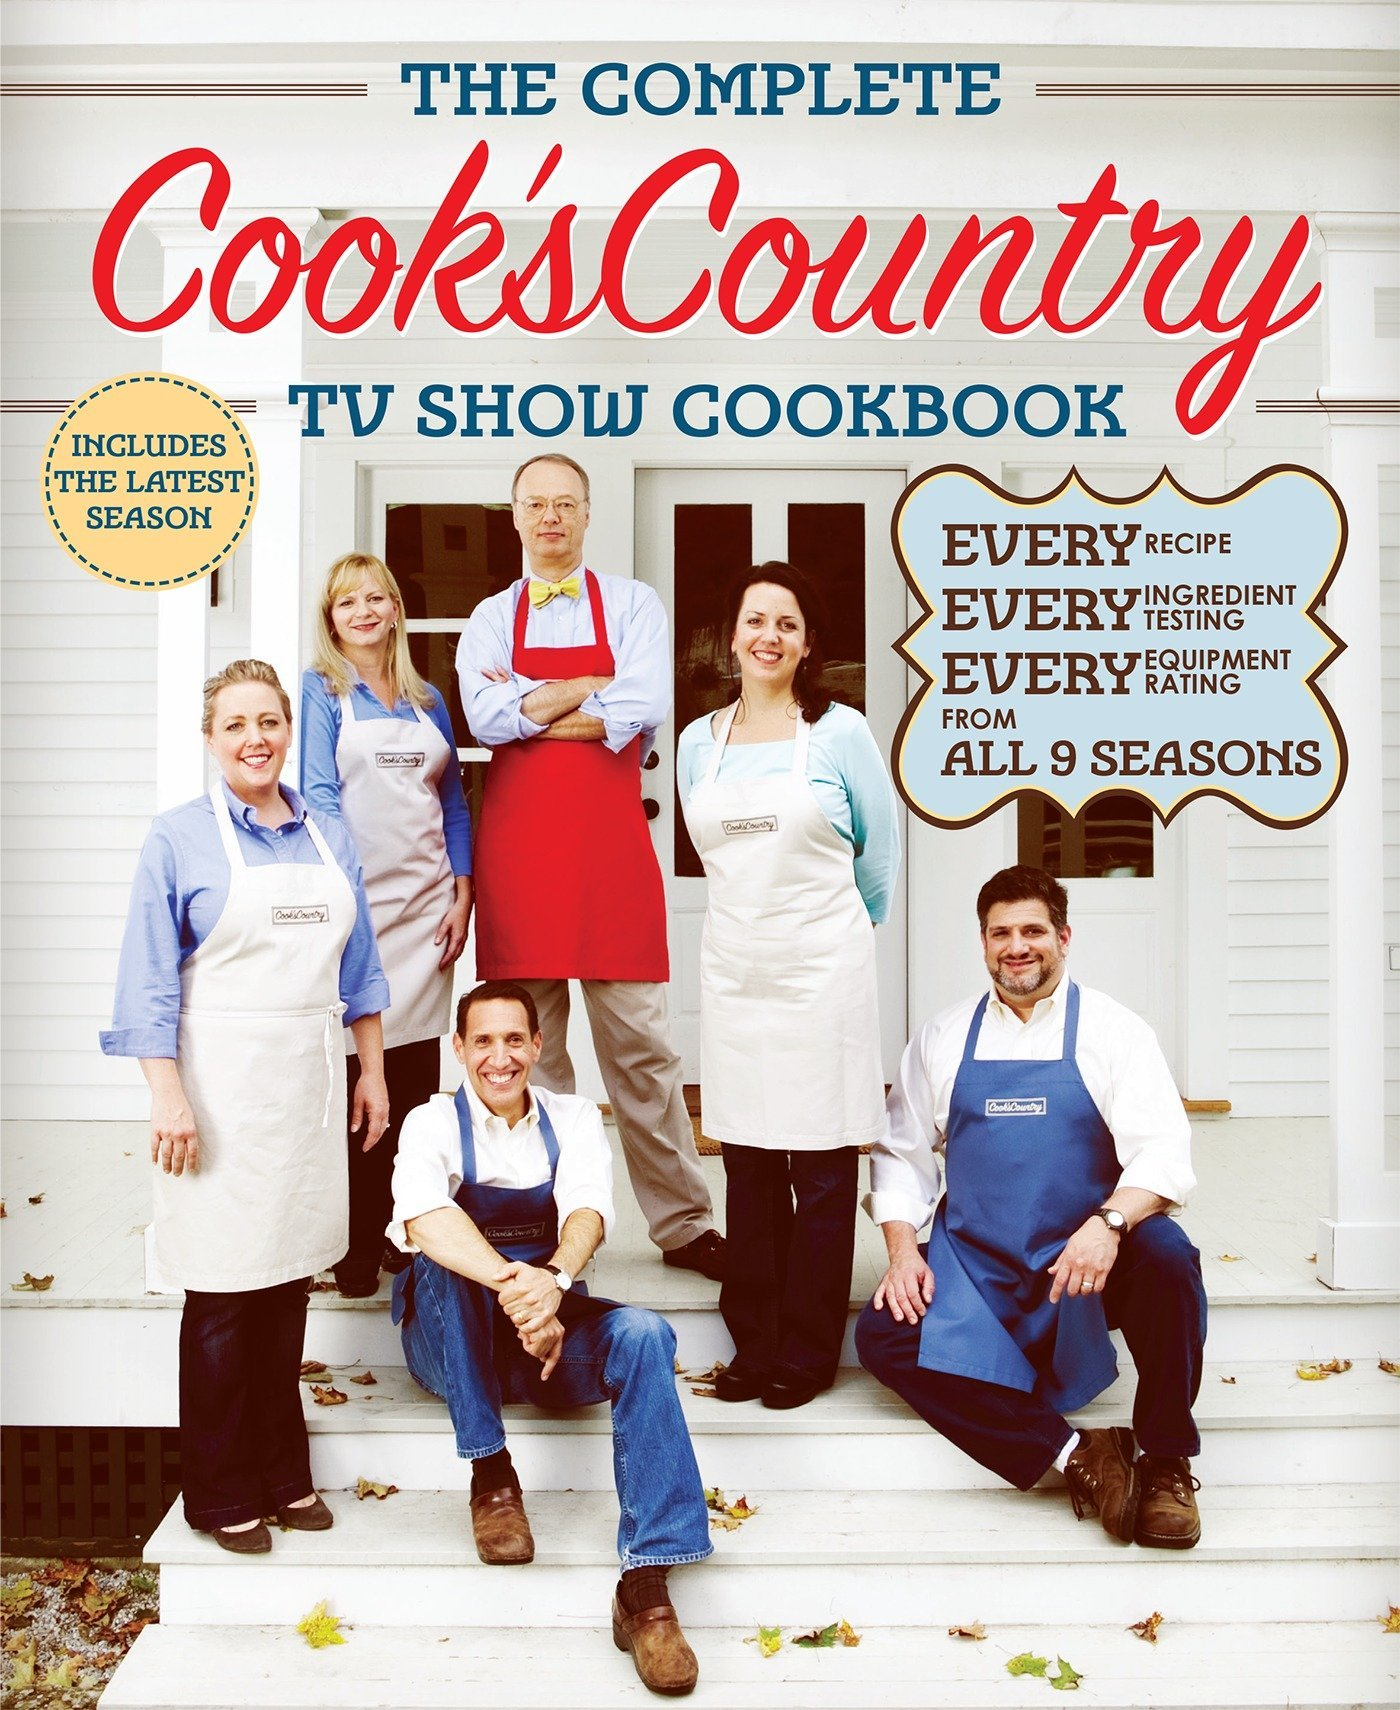 Image OfThe Complete Cook's Country TV Show Cookbook Season 9